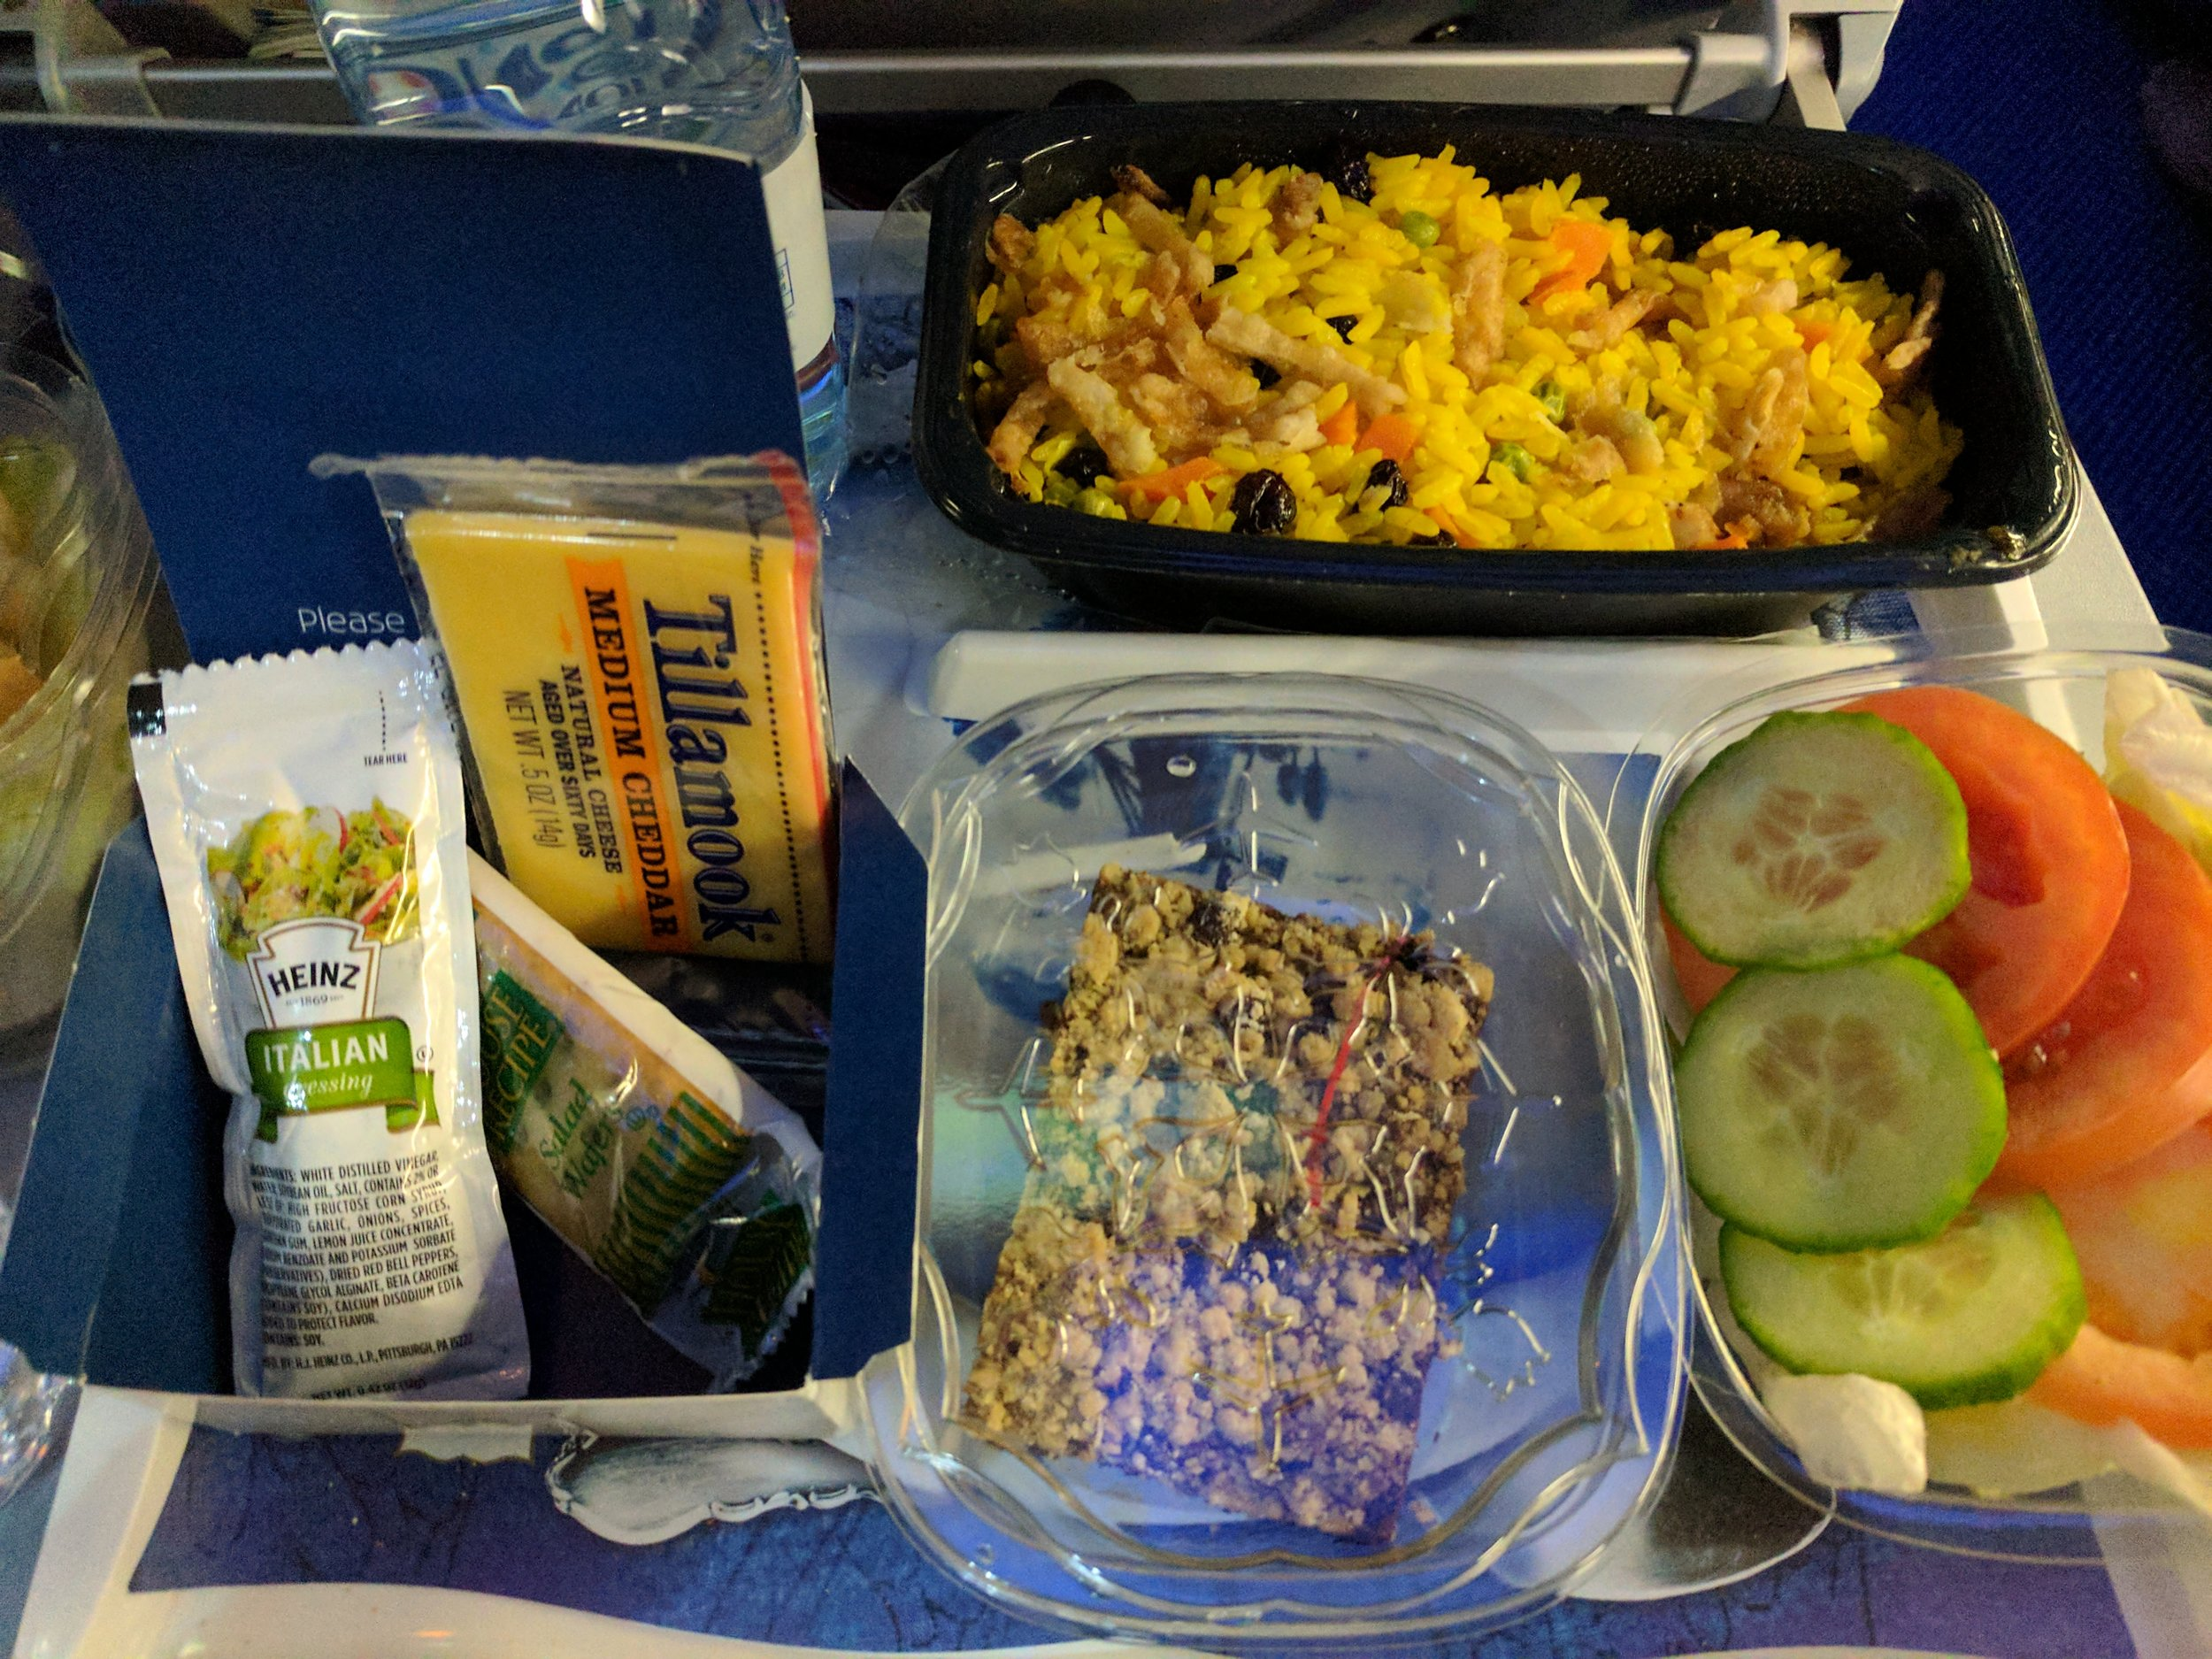 Standard Dinner - Rice stir fry with chicken tenderloin pieces (buried under the rice)Tomato &cucumber salad with standard Italian dressingCrackers with Tillanook cheddar cheeseBaked dessertWater bottle